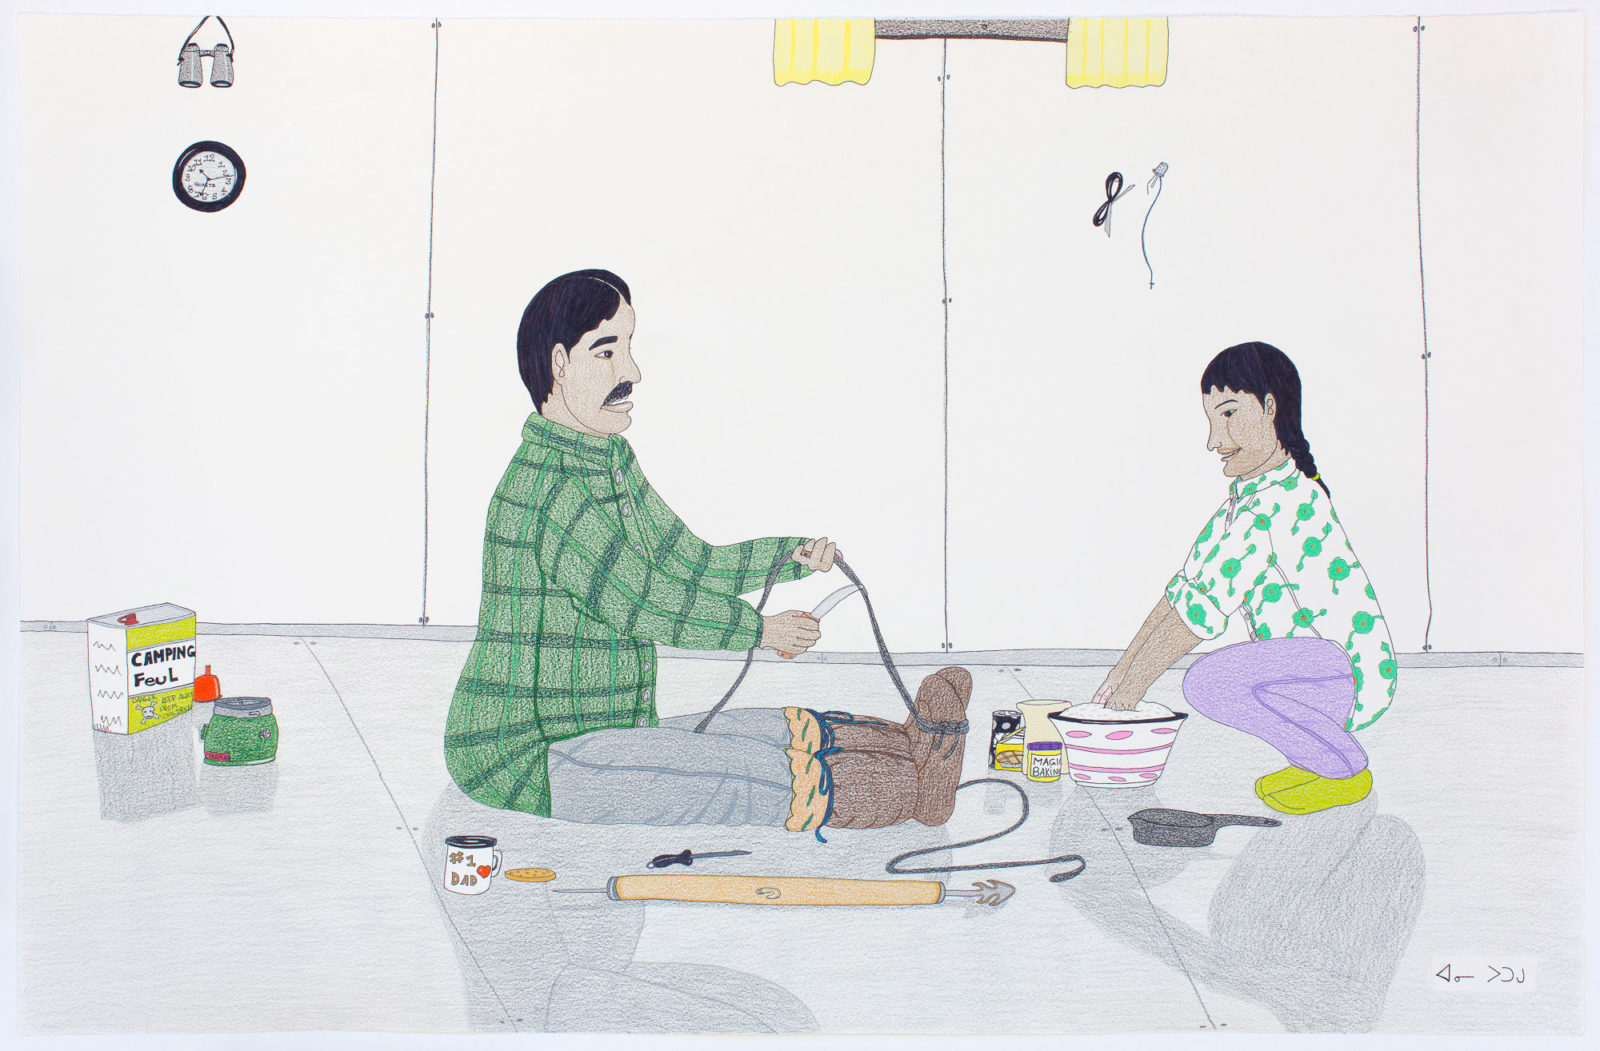 Annie Pootoogook - untitled (making rope and bannock)